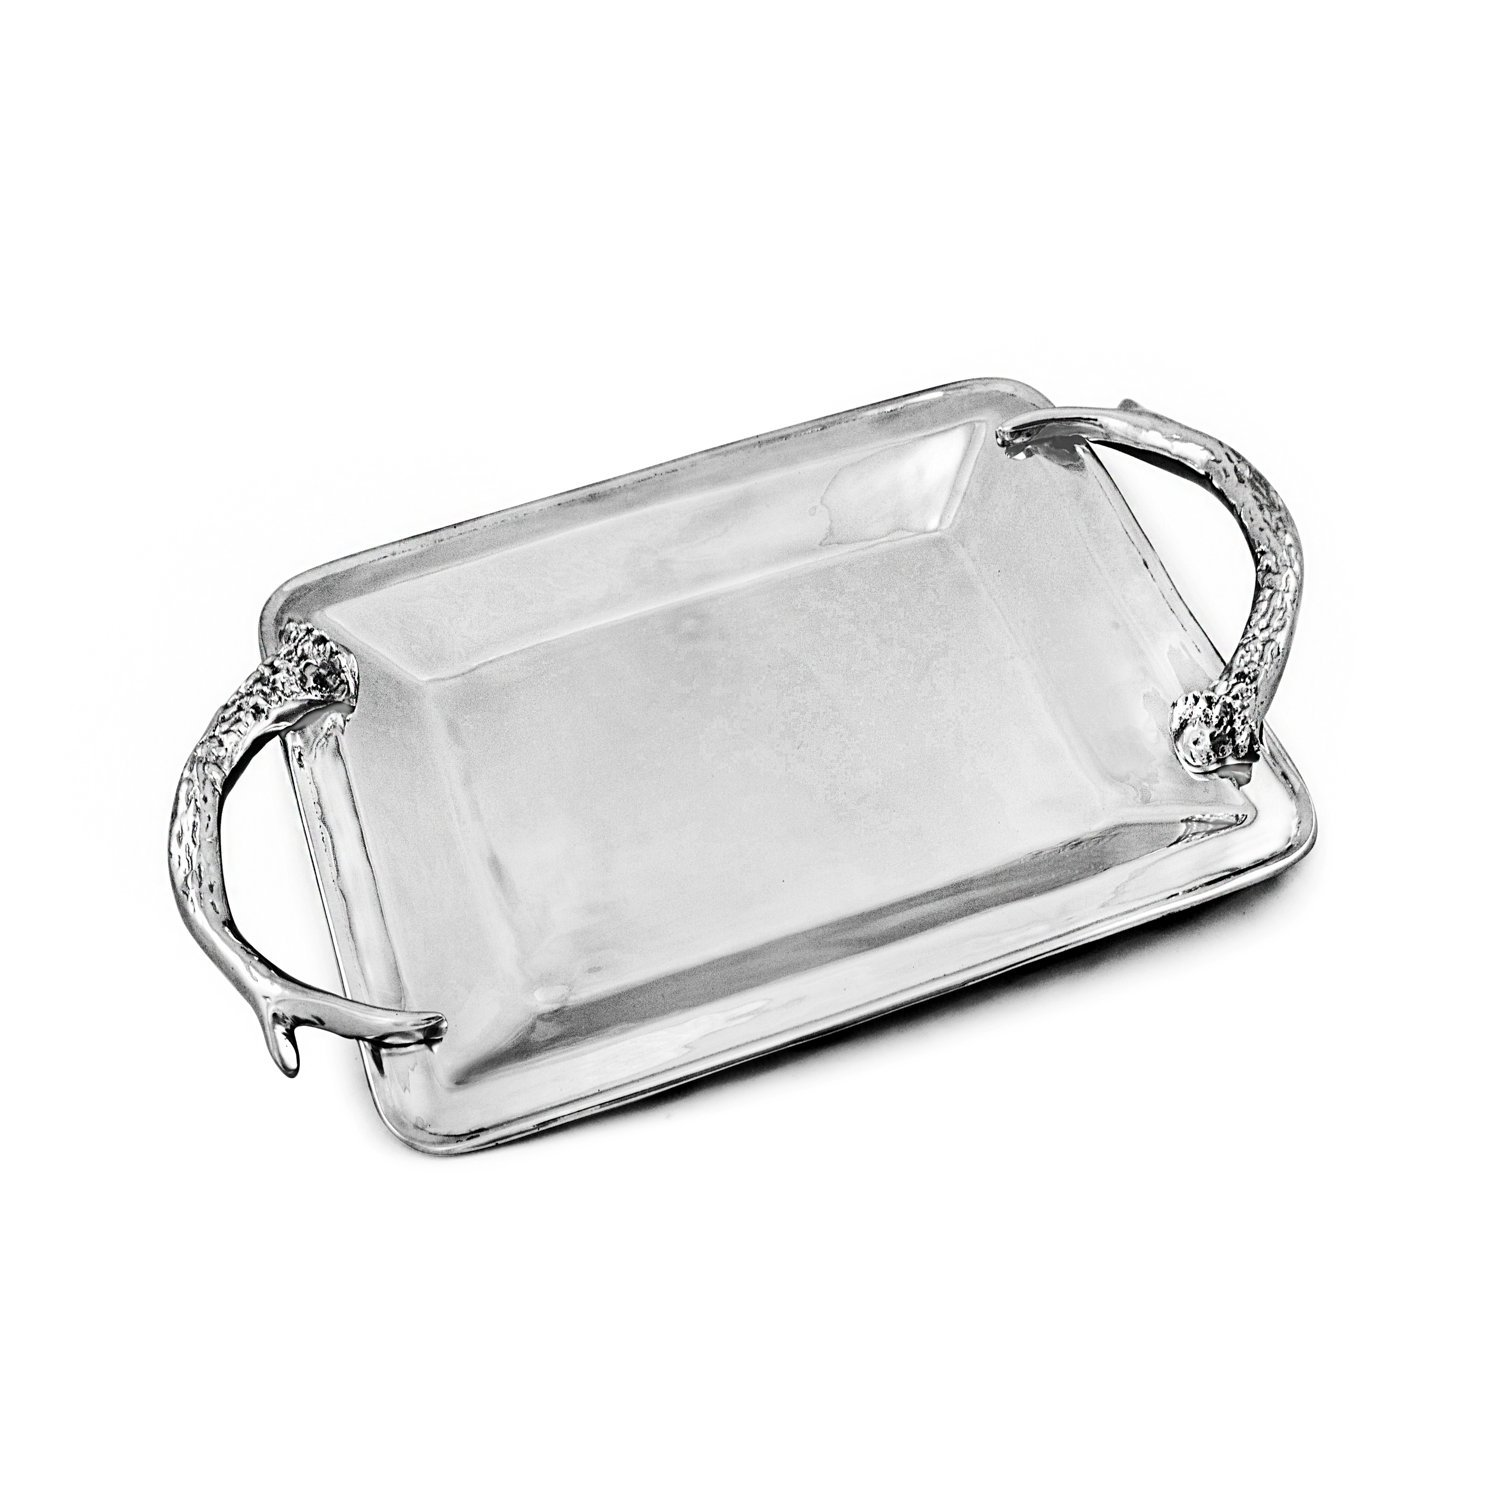 Beatriz Ball 6046 Breakfast-Trays, Metallic